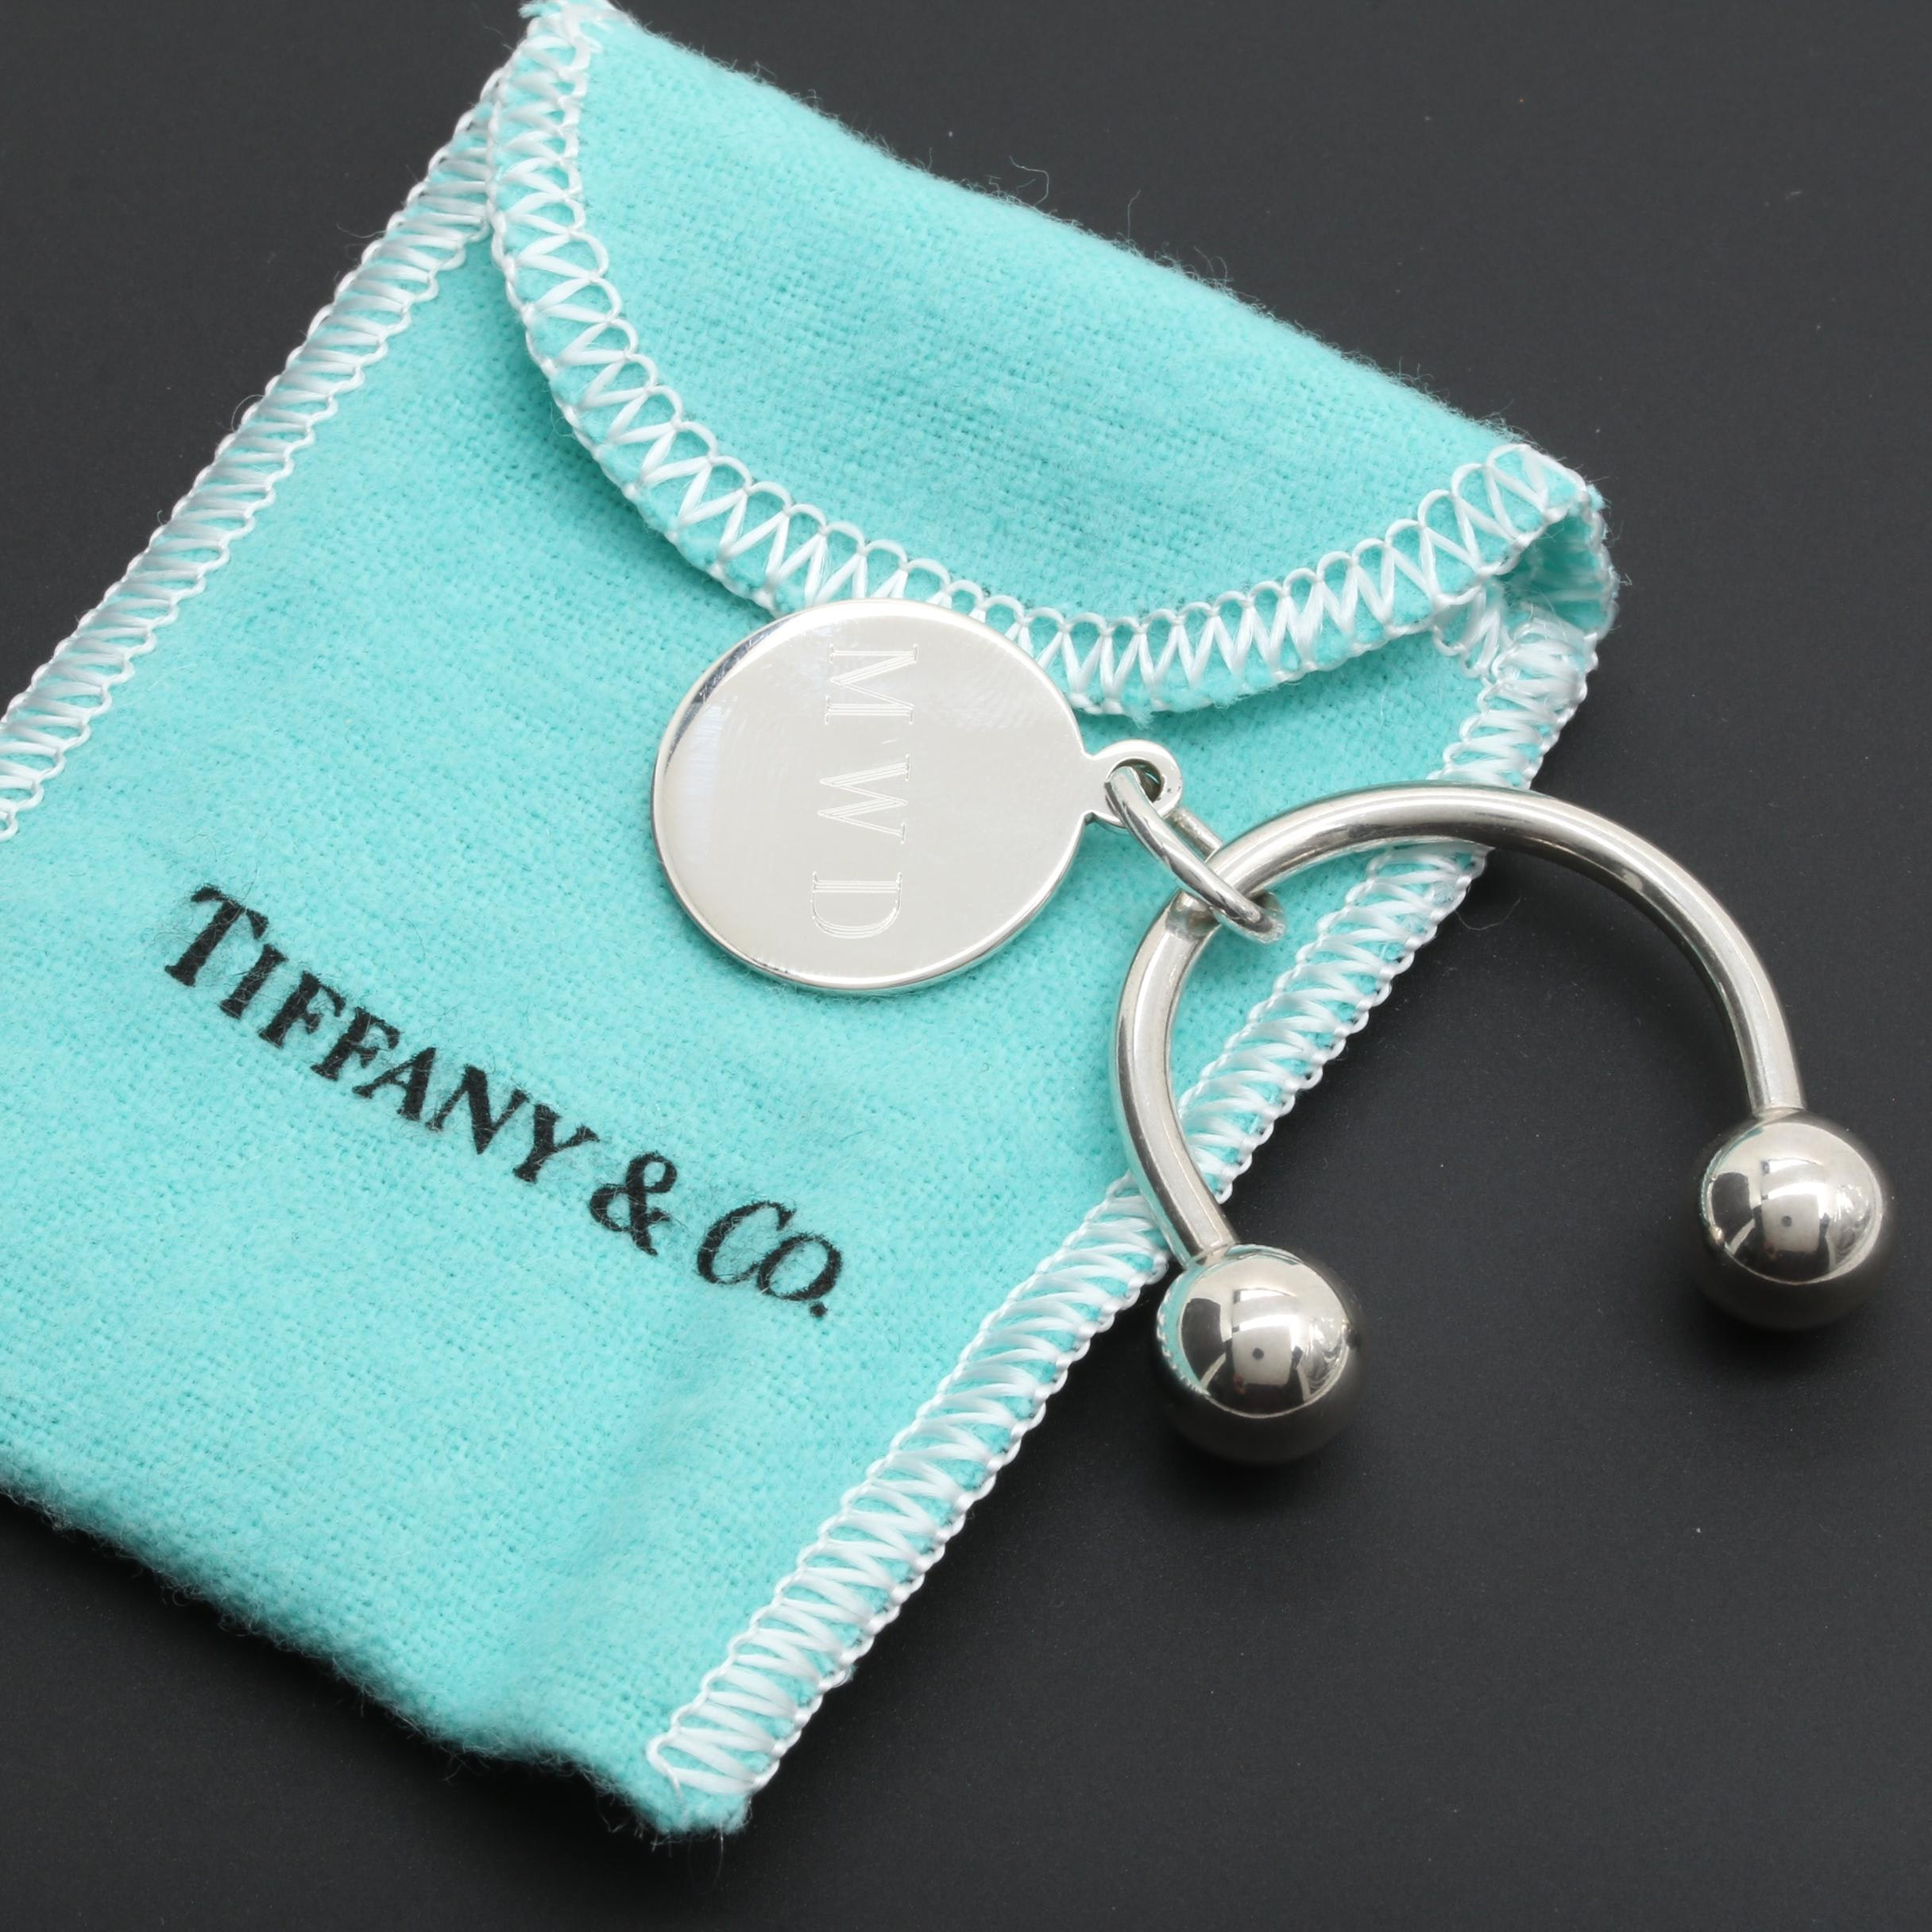 Tiffany & Co. Sterling Silver Round Tag and Key Ring